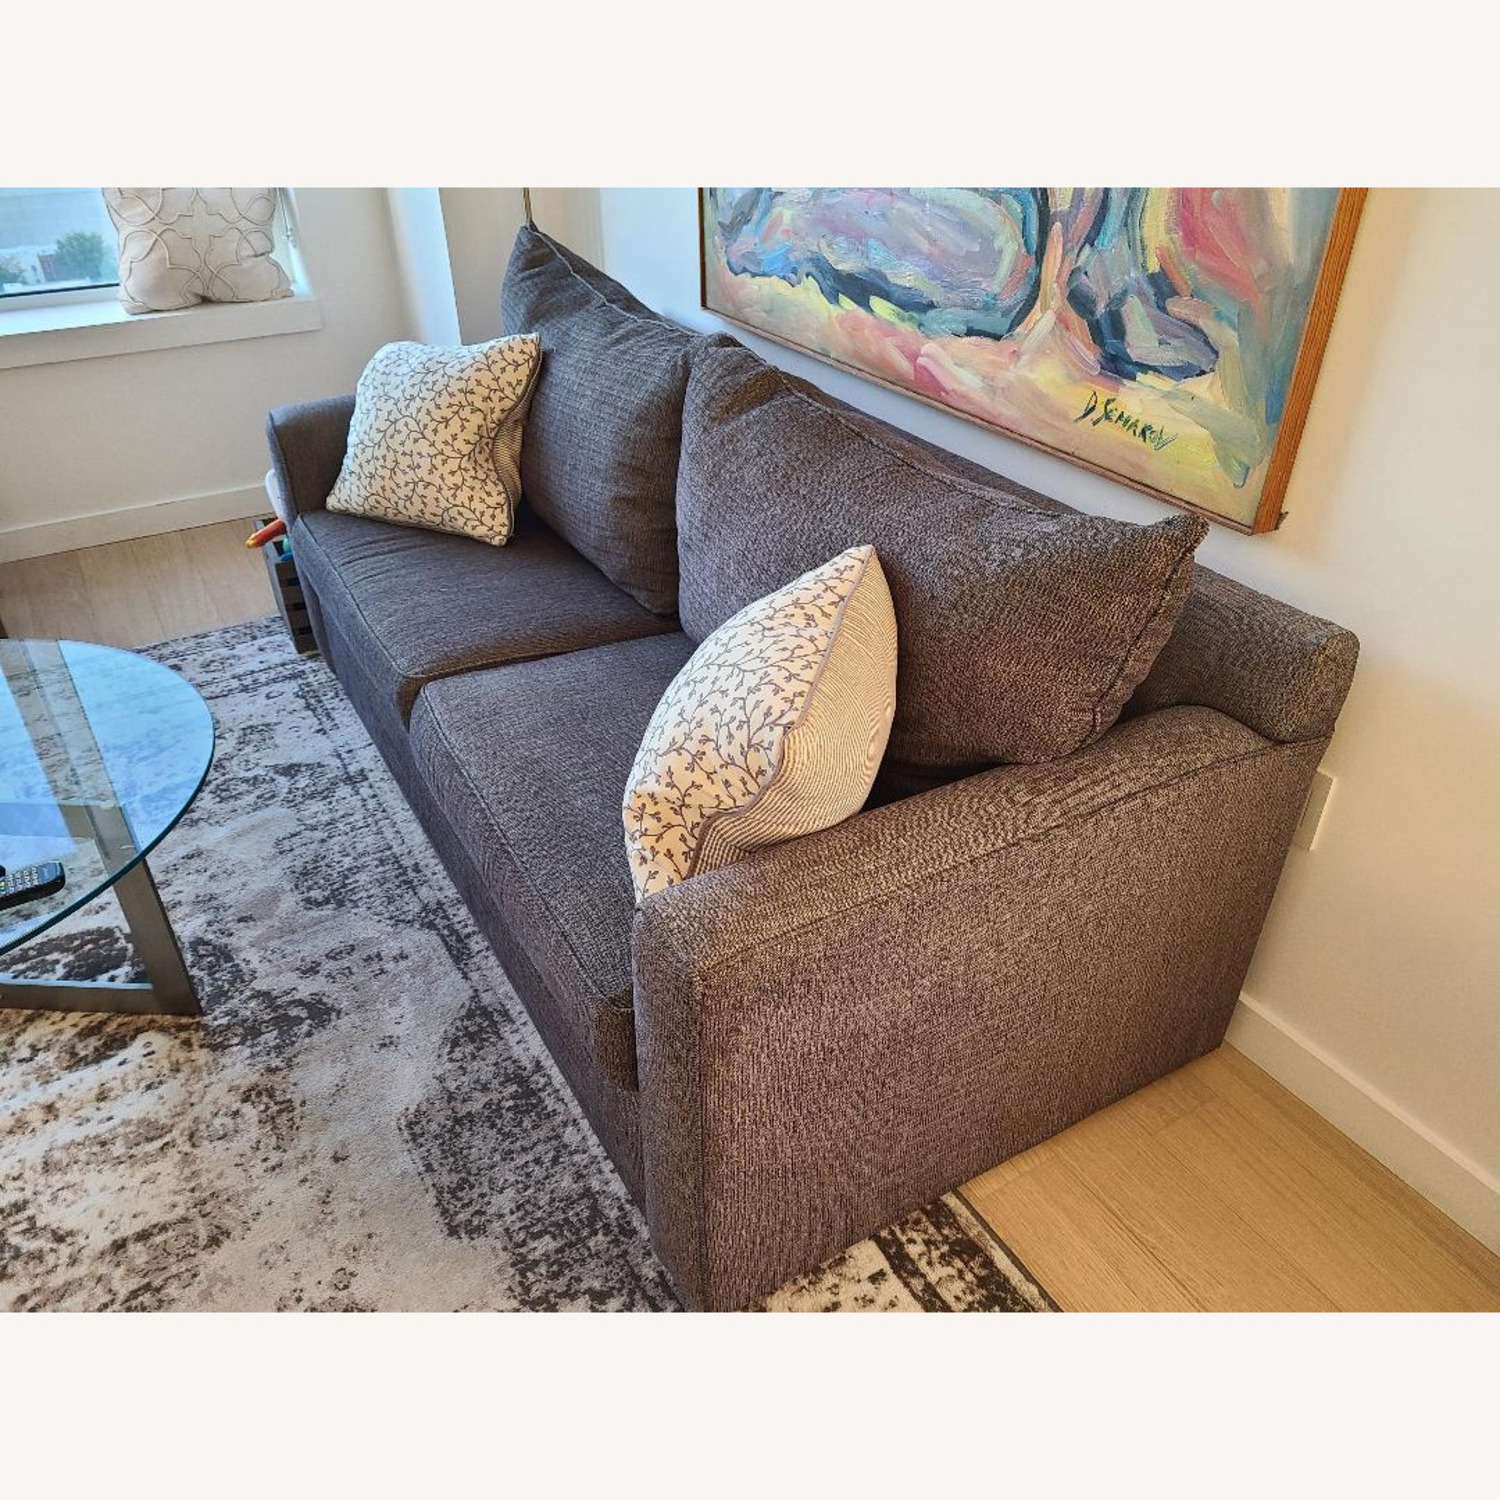 Raymour and Flannigan Tracey Queen Sleeper Sofa - image-1